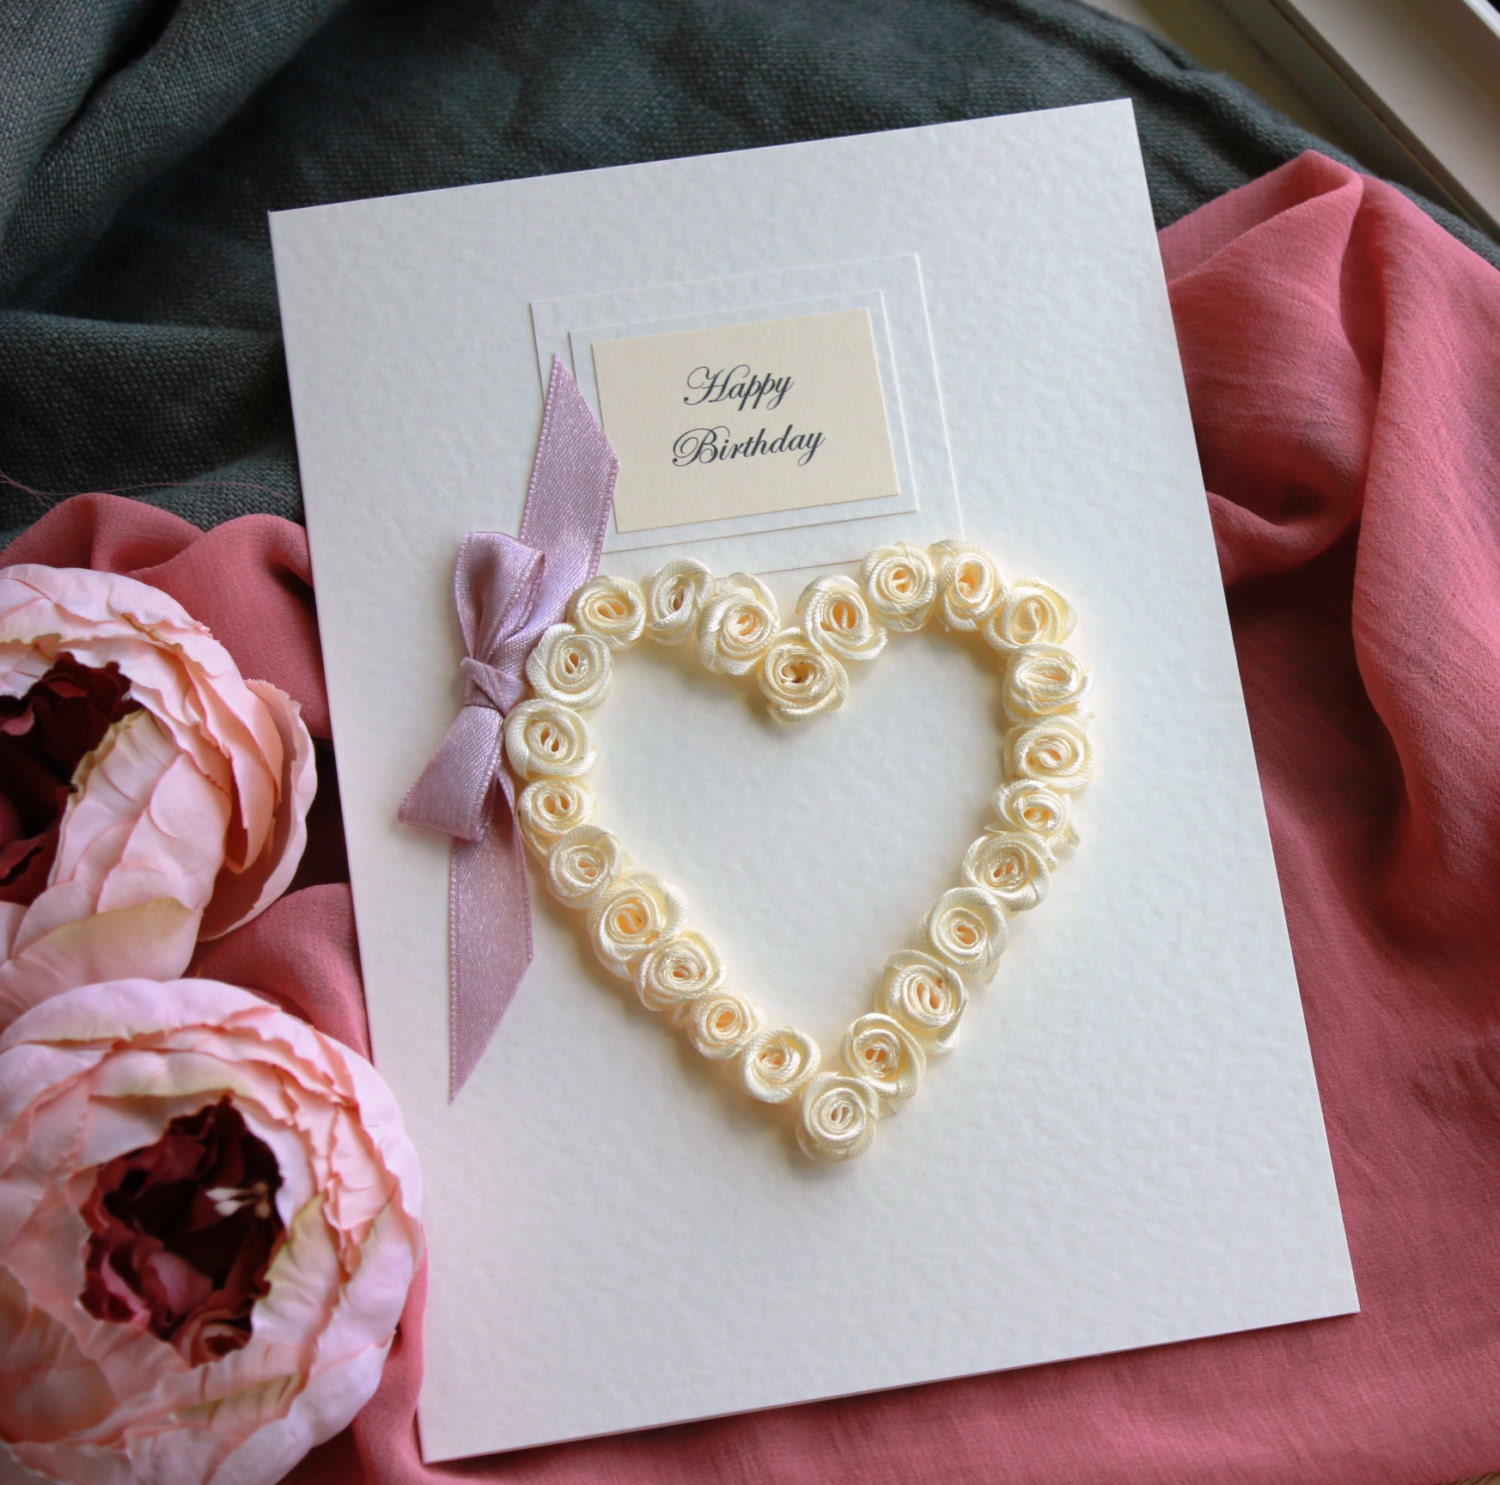 Beautiful granddaughter birthday cards images eccleshallfc sweet sixteen card daughter birthday girl granddaughter best bookmarktalkfo Image collections